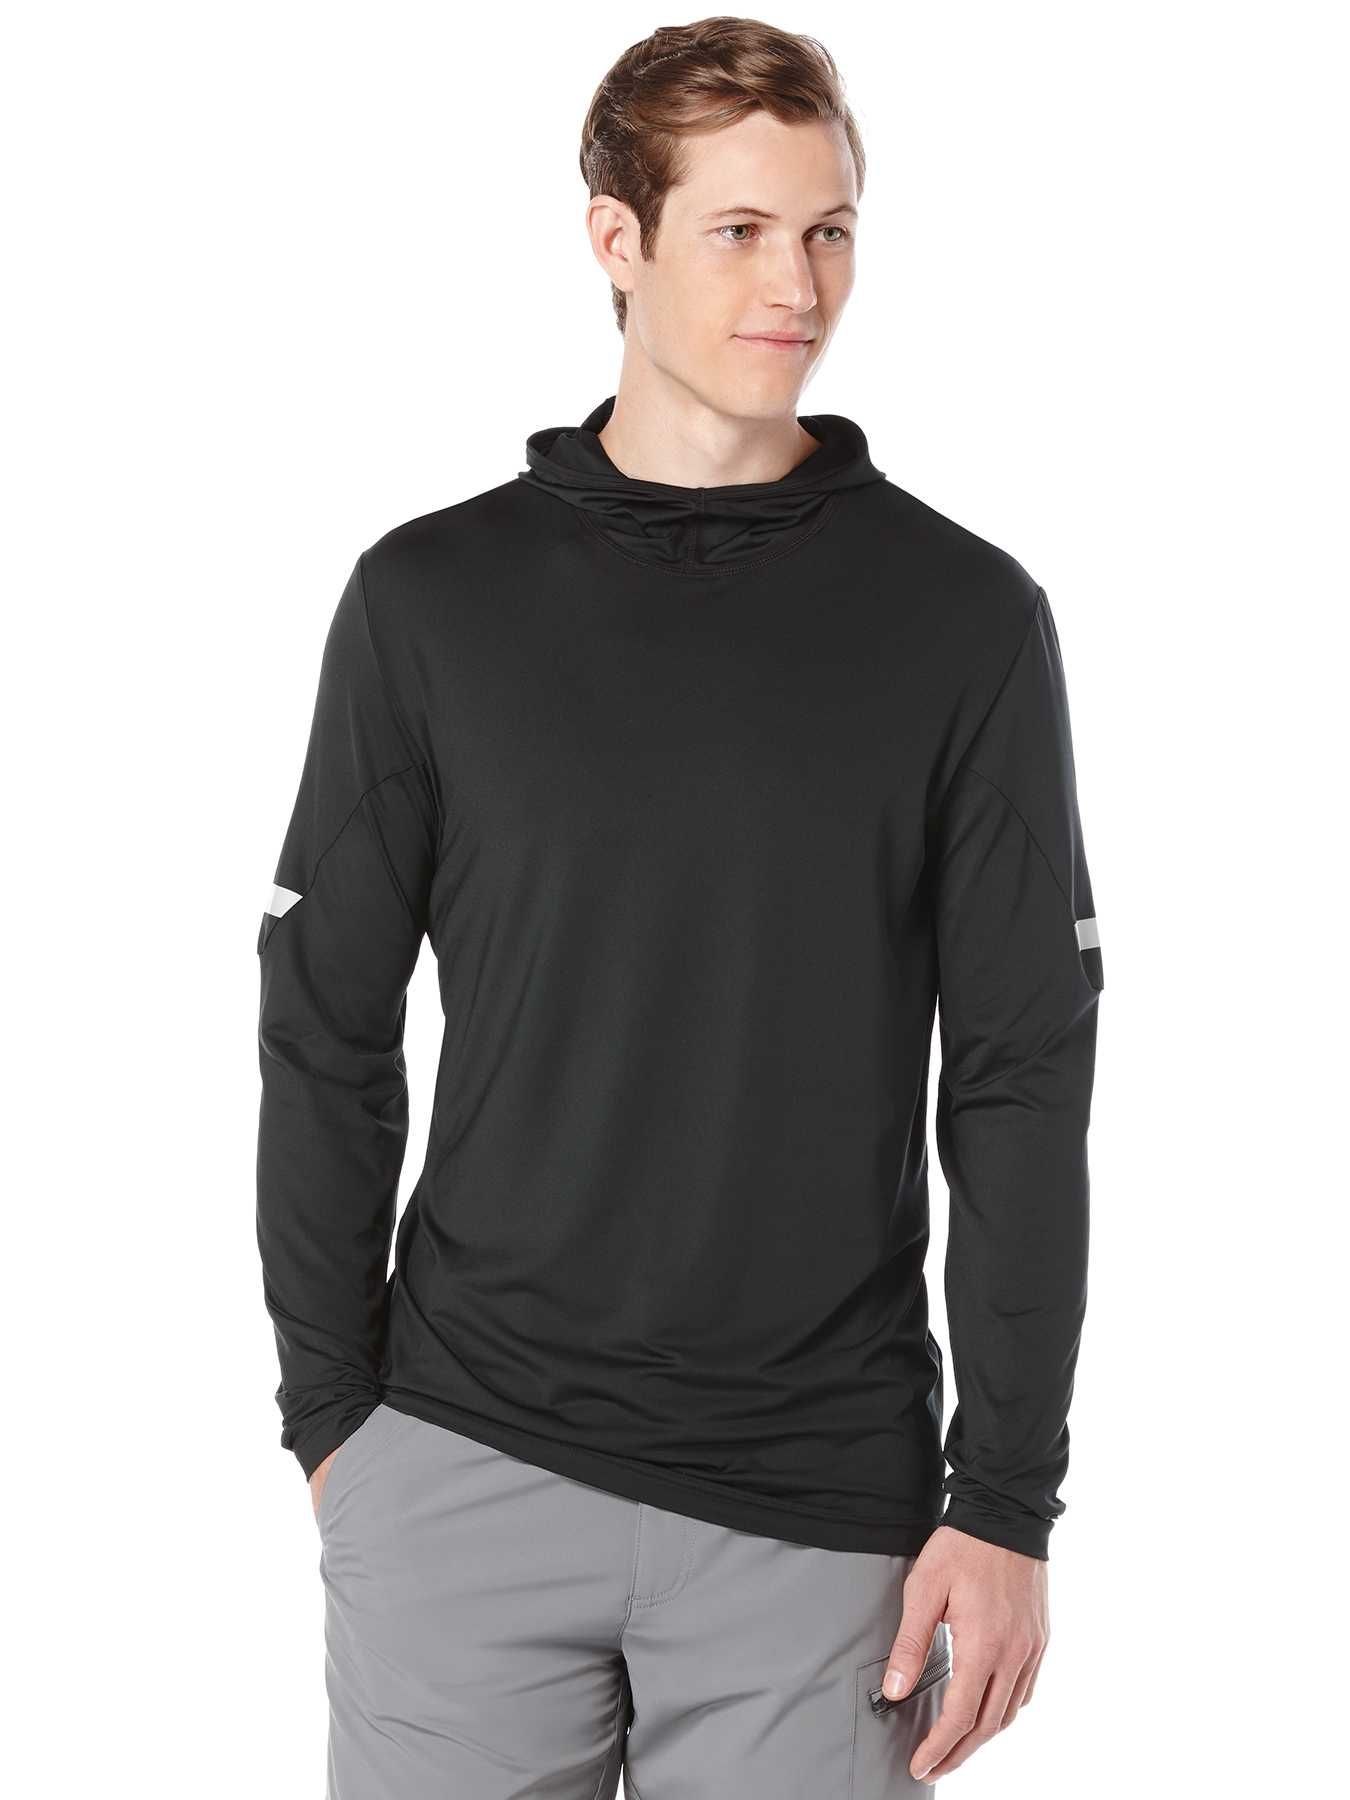 #FashionVault #perry ellis #Men #Tops - Check this : Perry Ellis Long Sleeve Hood Pullover for $12.99 USD